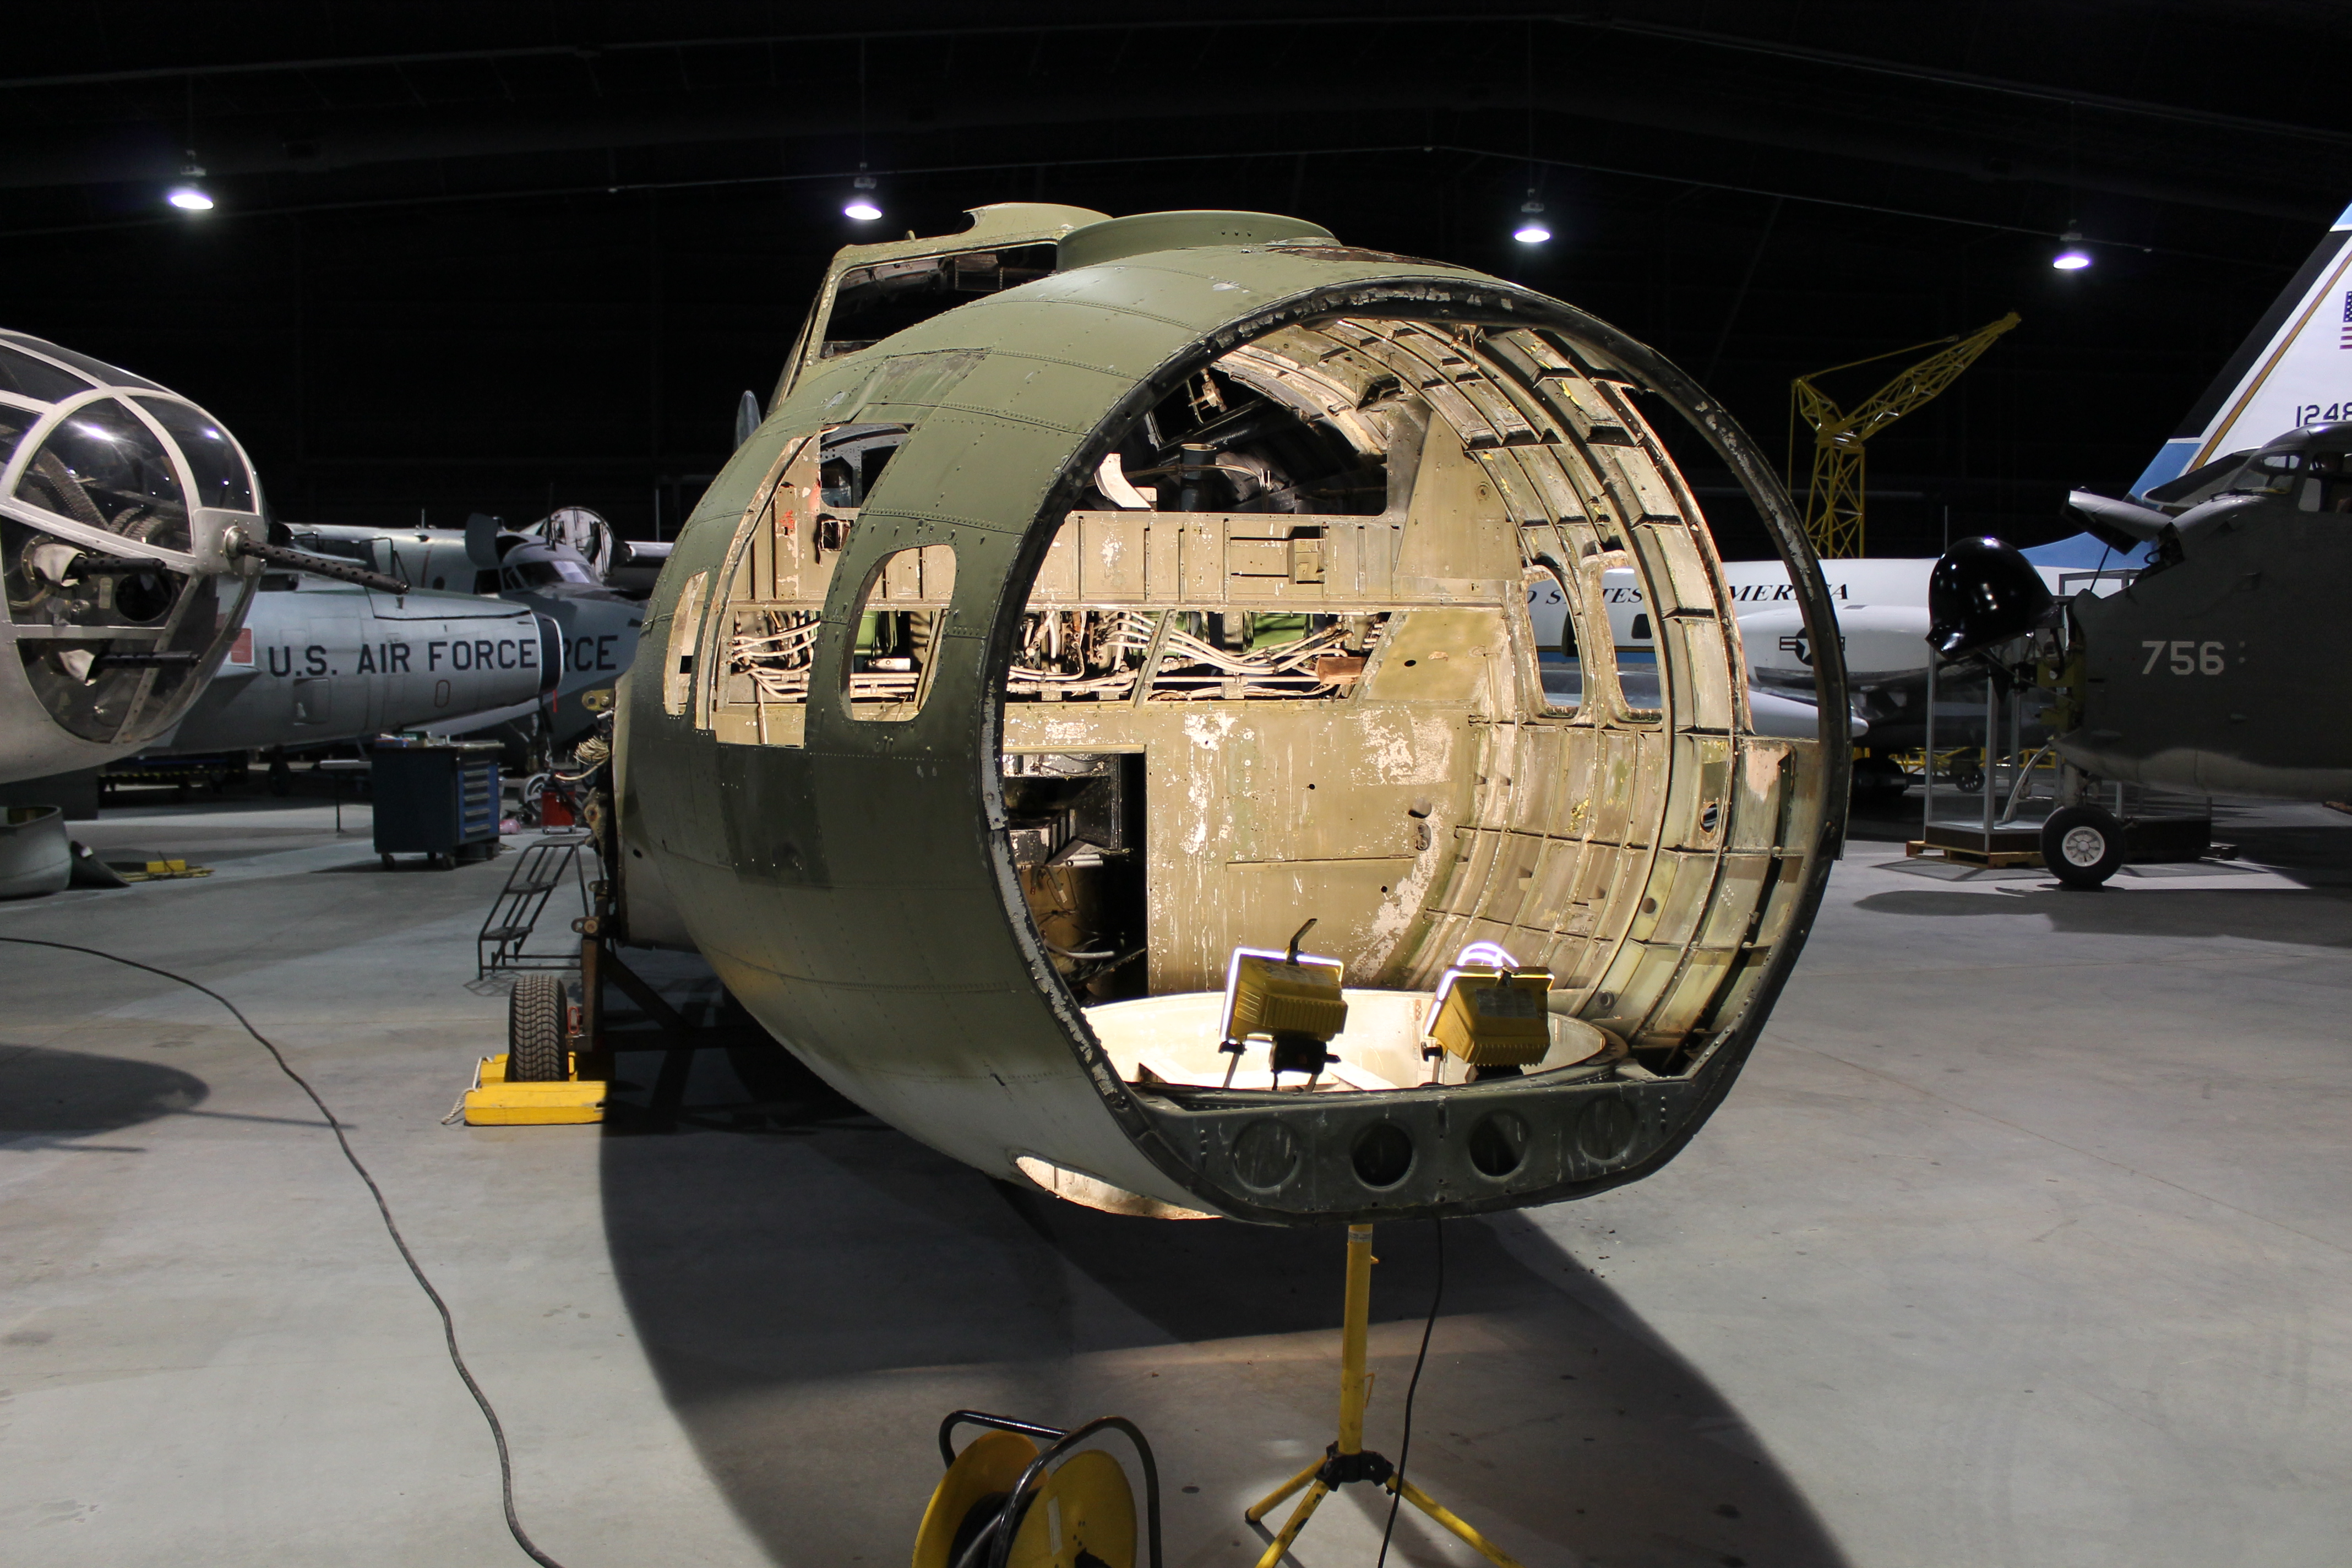 B-17 Flying Fortress Restoration Update #1 - Museum of Aviation